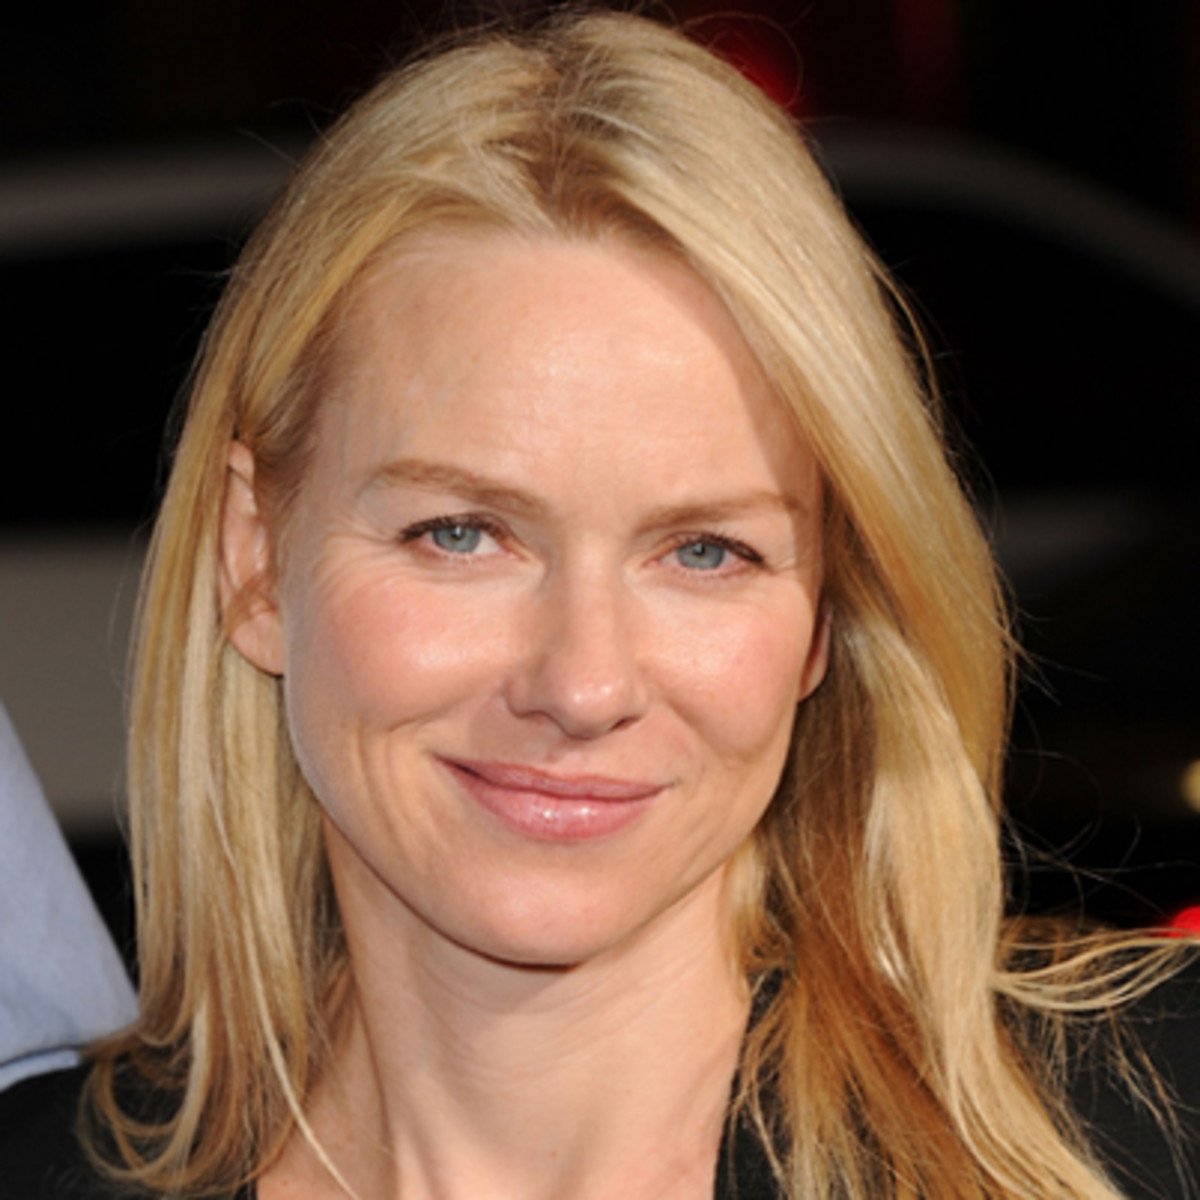 Naomi Watts - Actress, Film Actor/Film Actress, Film ... Naomi Watts Imdb